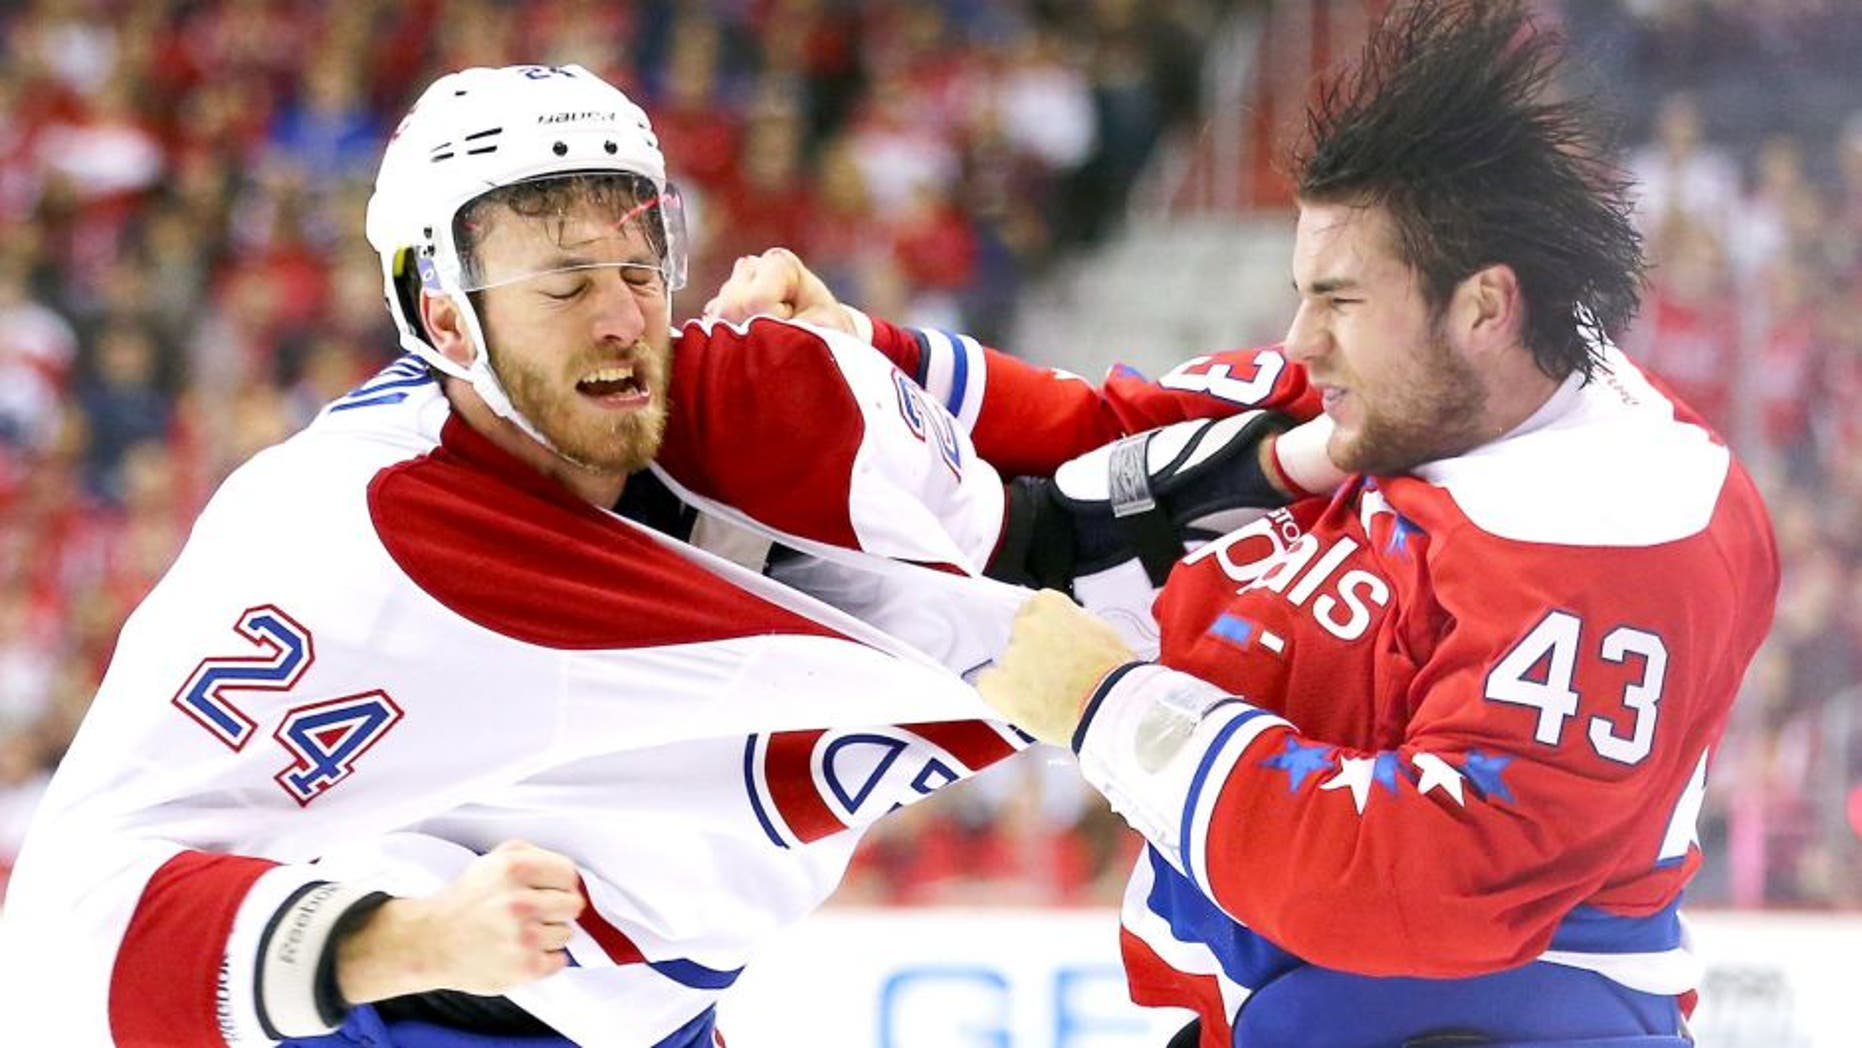 WASHINGTON, DC - DECEMBER 26: Jarred Tinordi #24 of the Montreal Canadiens and Tom Wilson #43 of the Washington Capitals exchange punches during the first period at Verizon Center on December 26, 2015 in Washington, DC. (Photo by Maddie Meyer/Getty Images)